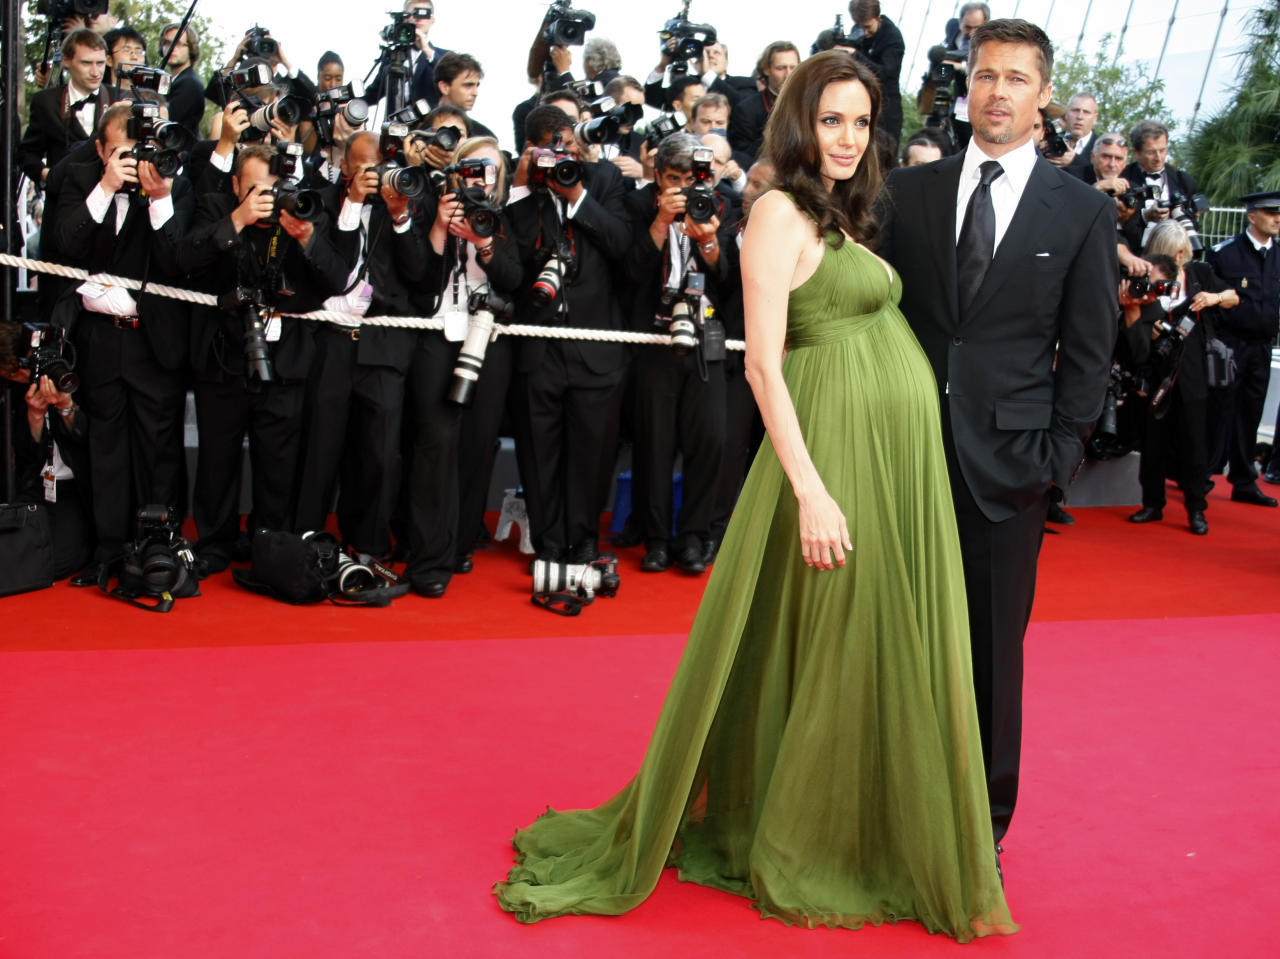 """Voice actress Angelina Jolie and actor Brad Pitt arrive for the screening of the animated film """"Kung Fu Panda"""" by directors Mark Osborne and John Stevenson at the 61st Cannes Film Festival May 15, 2008.    REUTERS/Eric Gaillard  (FRANCE)"""